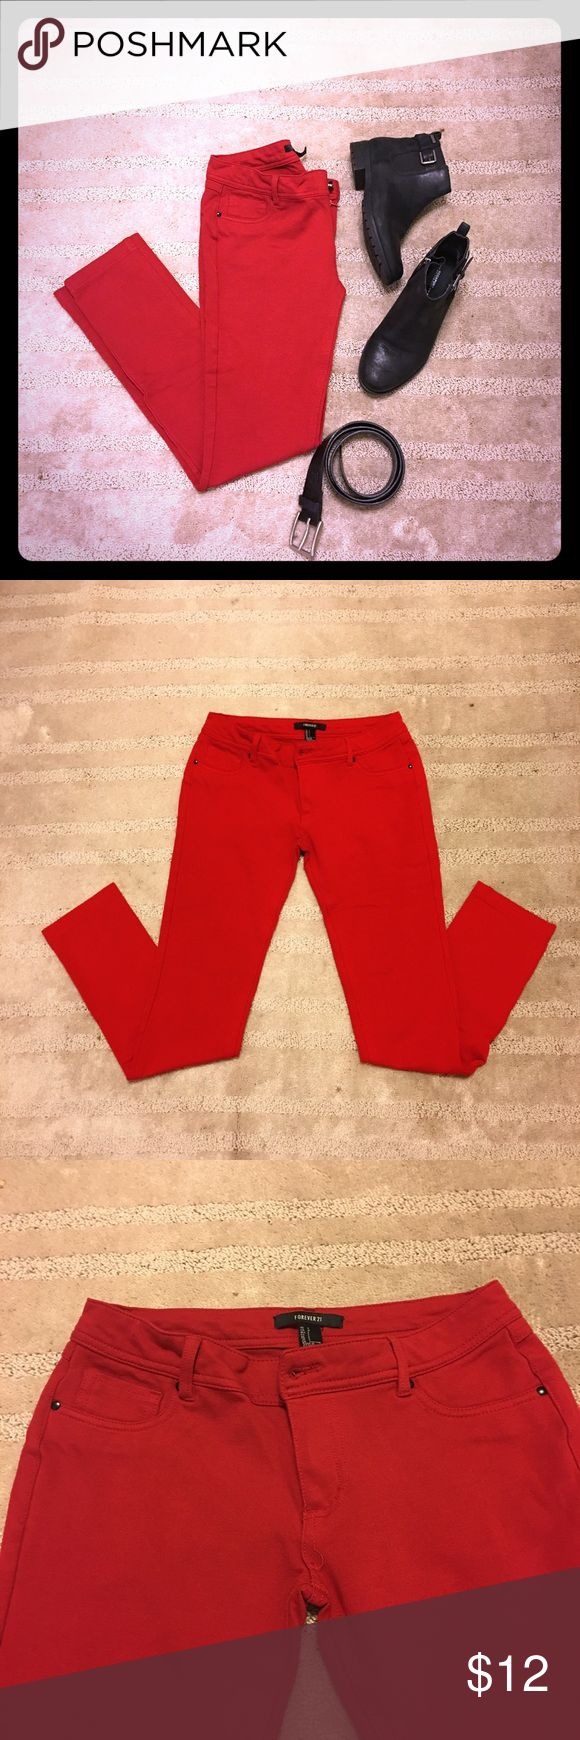 Forever21 Red Stretch Skinny Pants Stretch skinny leggings/pants.  Zip on front with pocket-like design on sides (not real pockets).  Two back pockets (real).  Great with boots and black sweaters or jackets. In very good condition. Size Large but fits like Medium. Forever 21 Pants Skinny